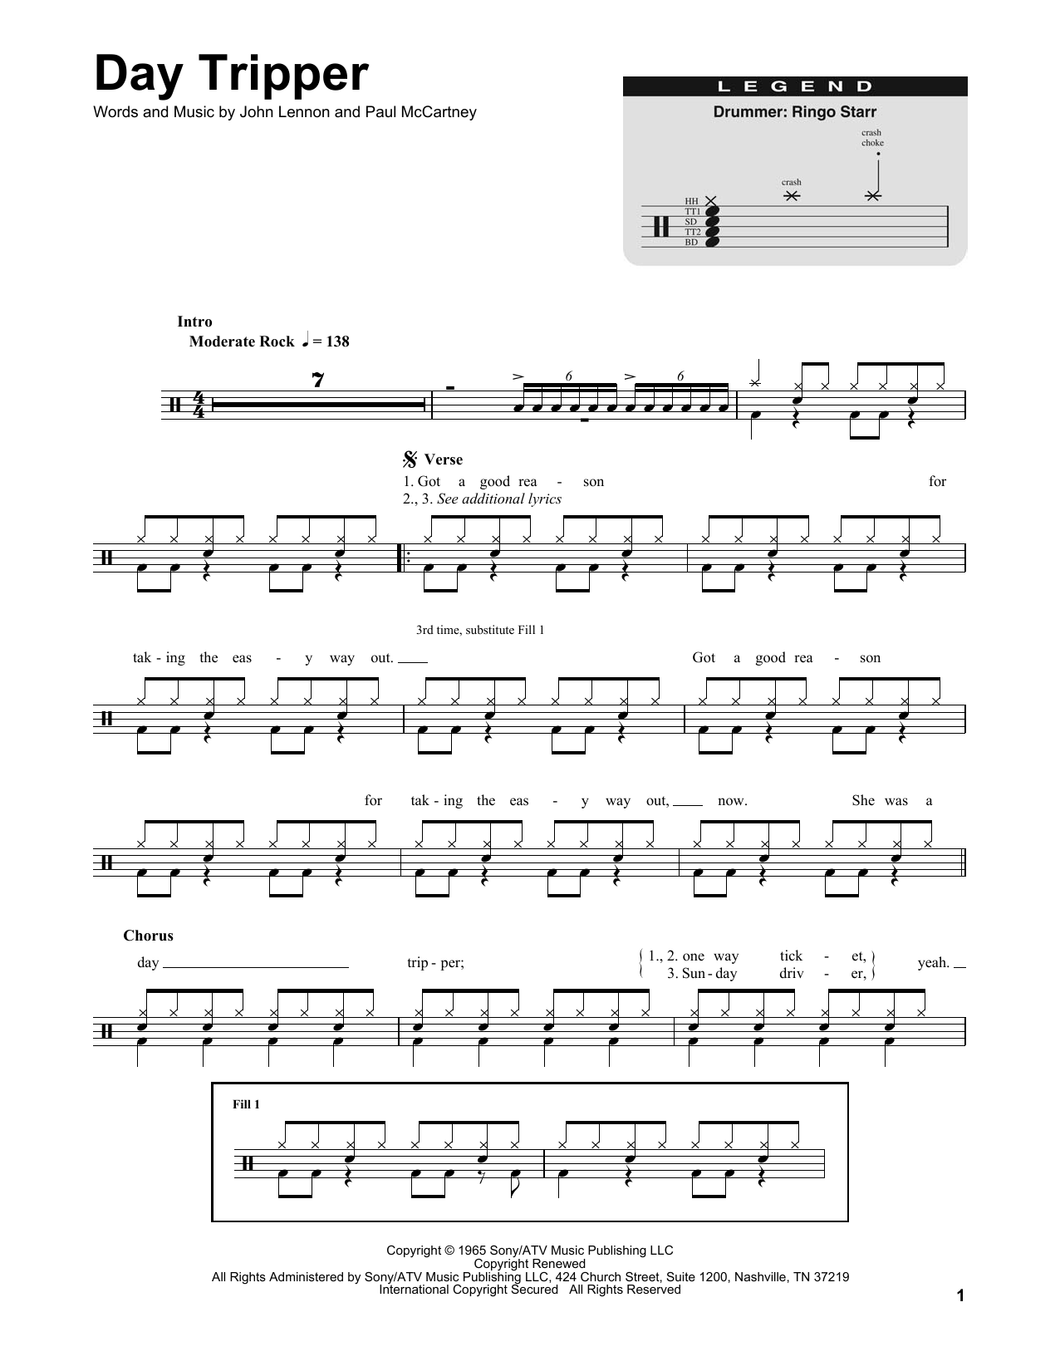 Day Tripper - The Beatles - Full Drum Transcription / Drum Sheet Music - SheetMusicDirect DT